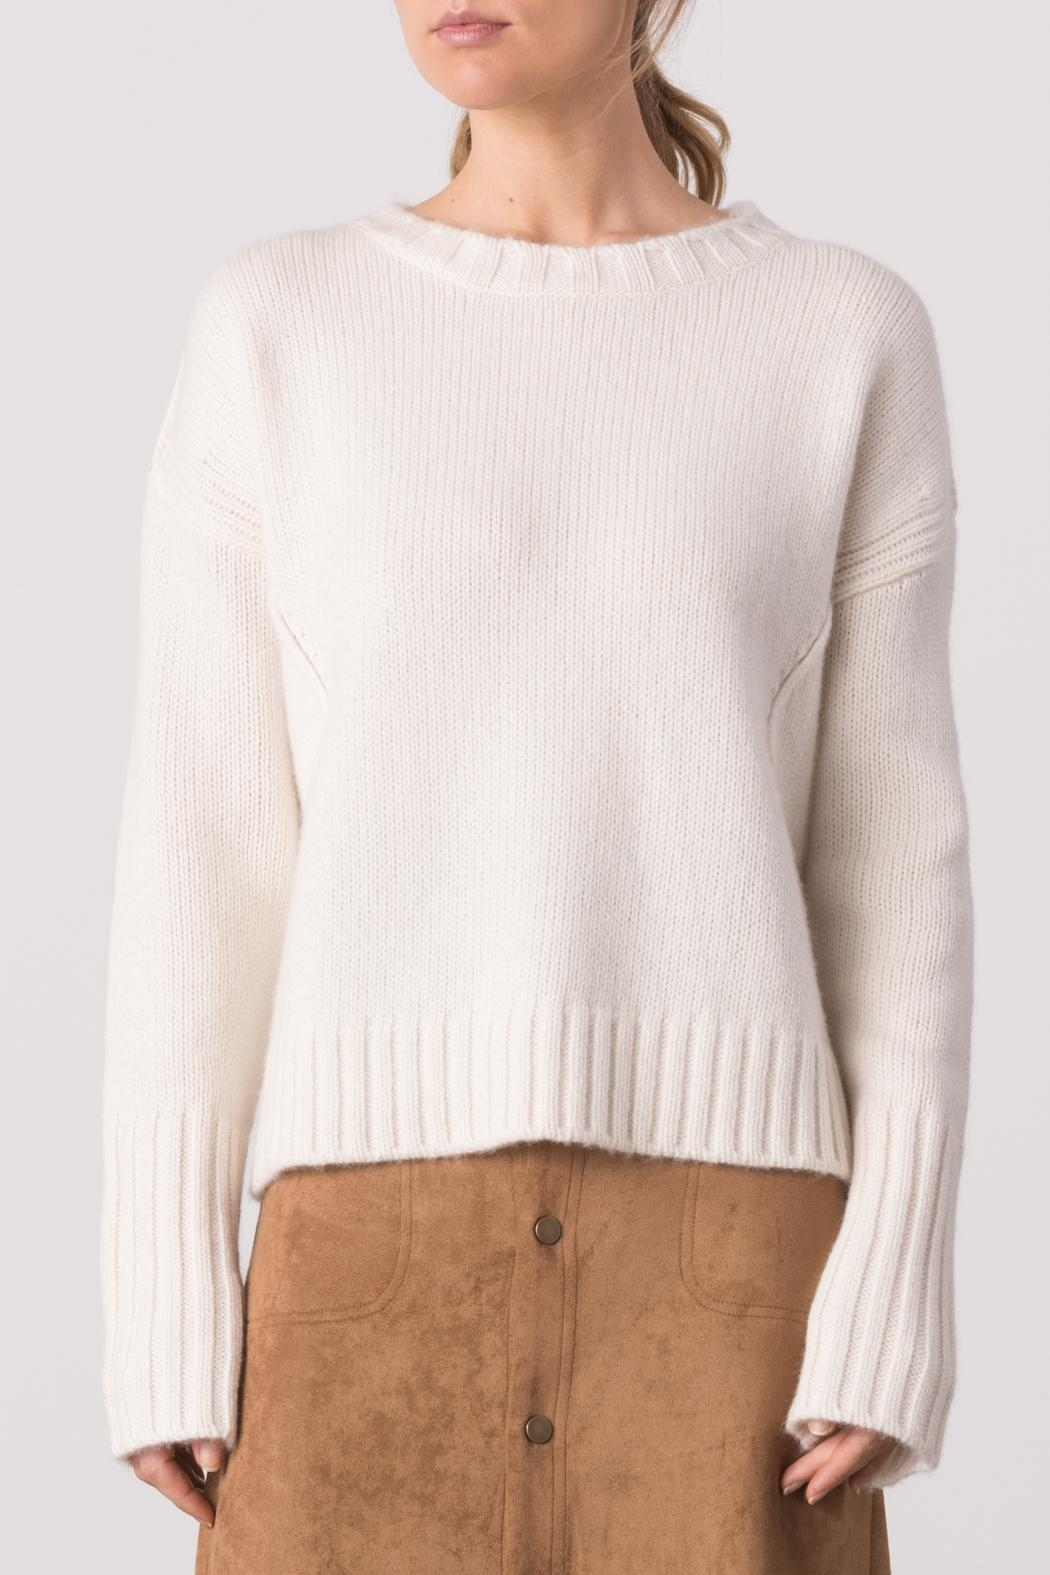 Margaret O'Leary Jana Luxe Pullover - Main Image